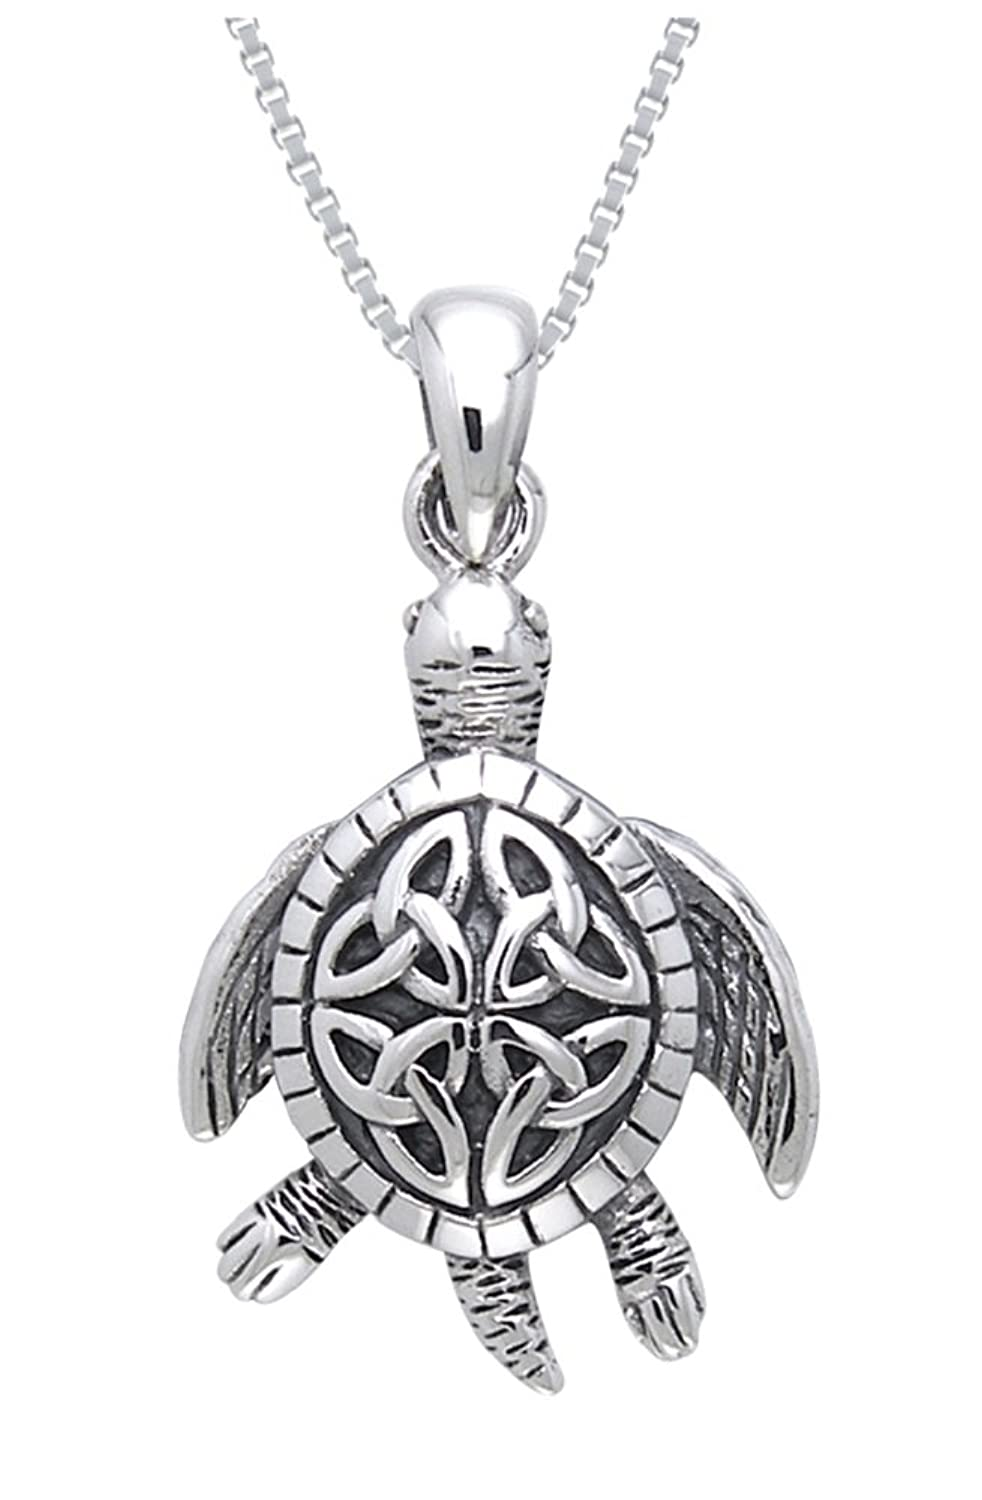 Amazon jewelry trends sterling silver celtic turtle trinity amazon jewelry trends sterling silver celtic turtle trinity knot pendant with 18 inch box chain necklace celtic jewelry for women jewelry mozeypictures Image collections